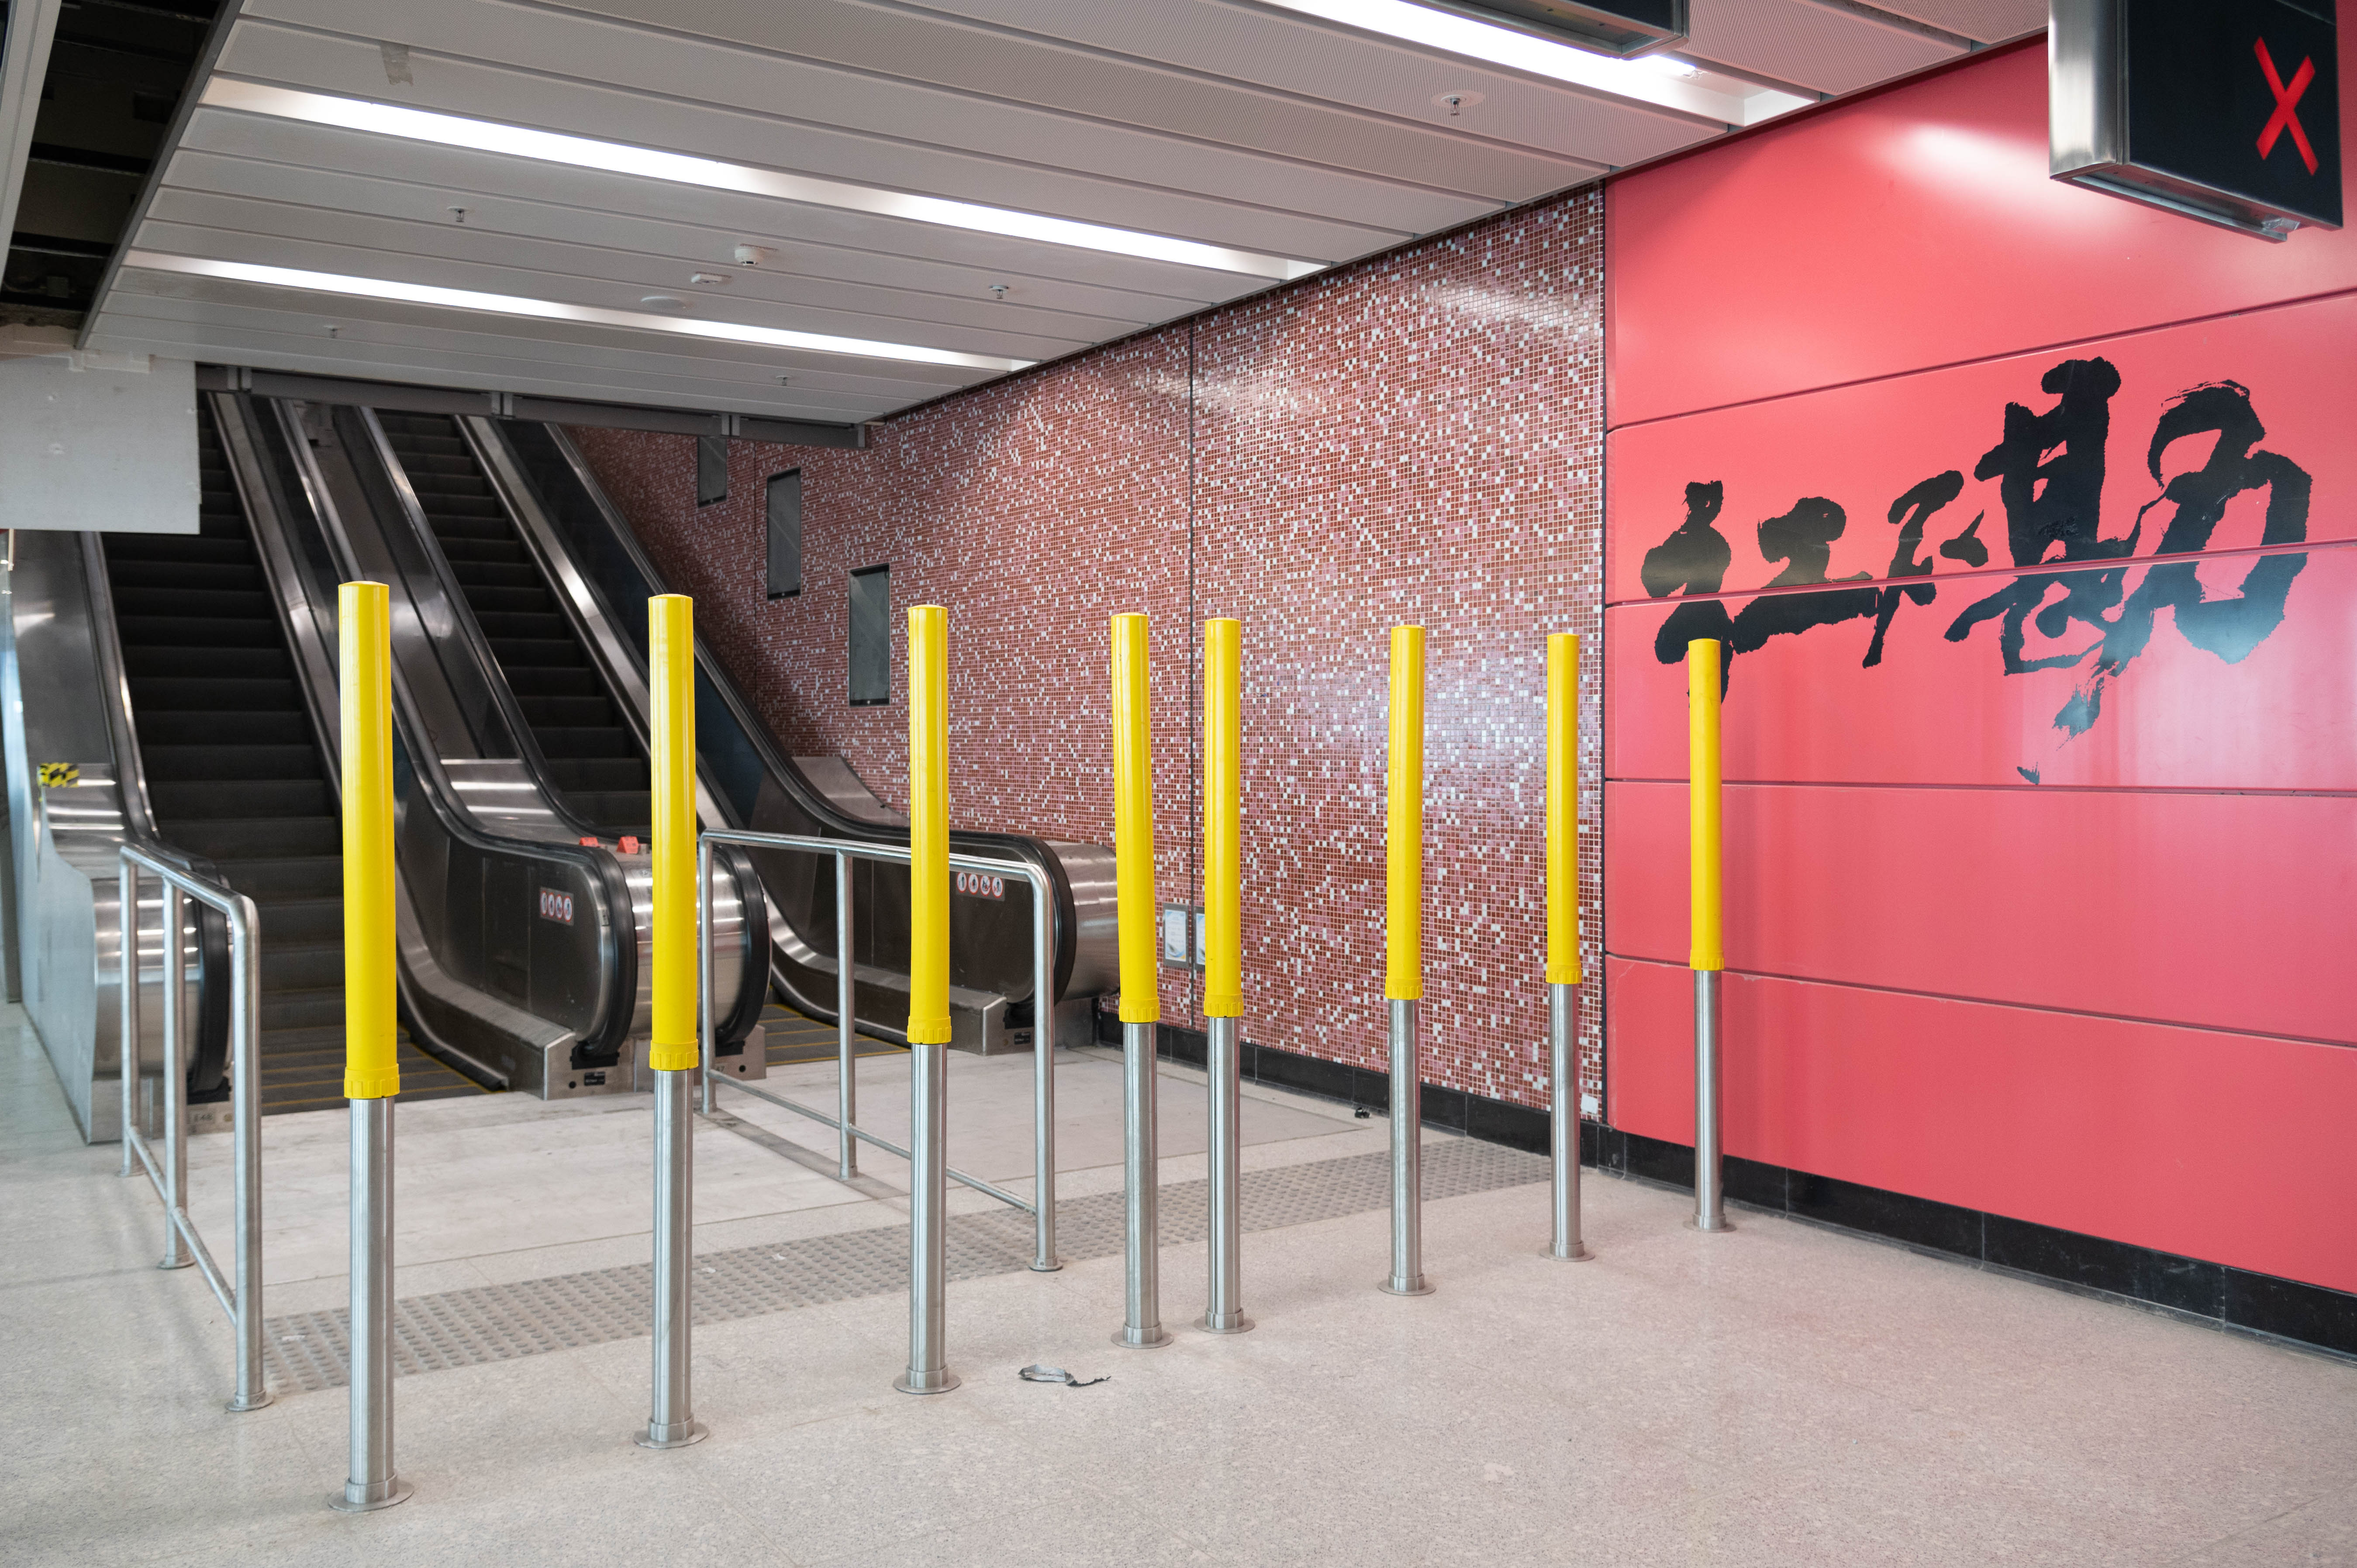 Improvement works at Hung Hom Station concourse in progress